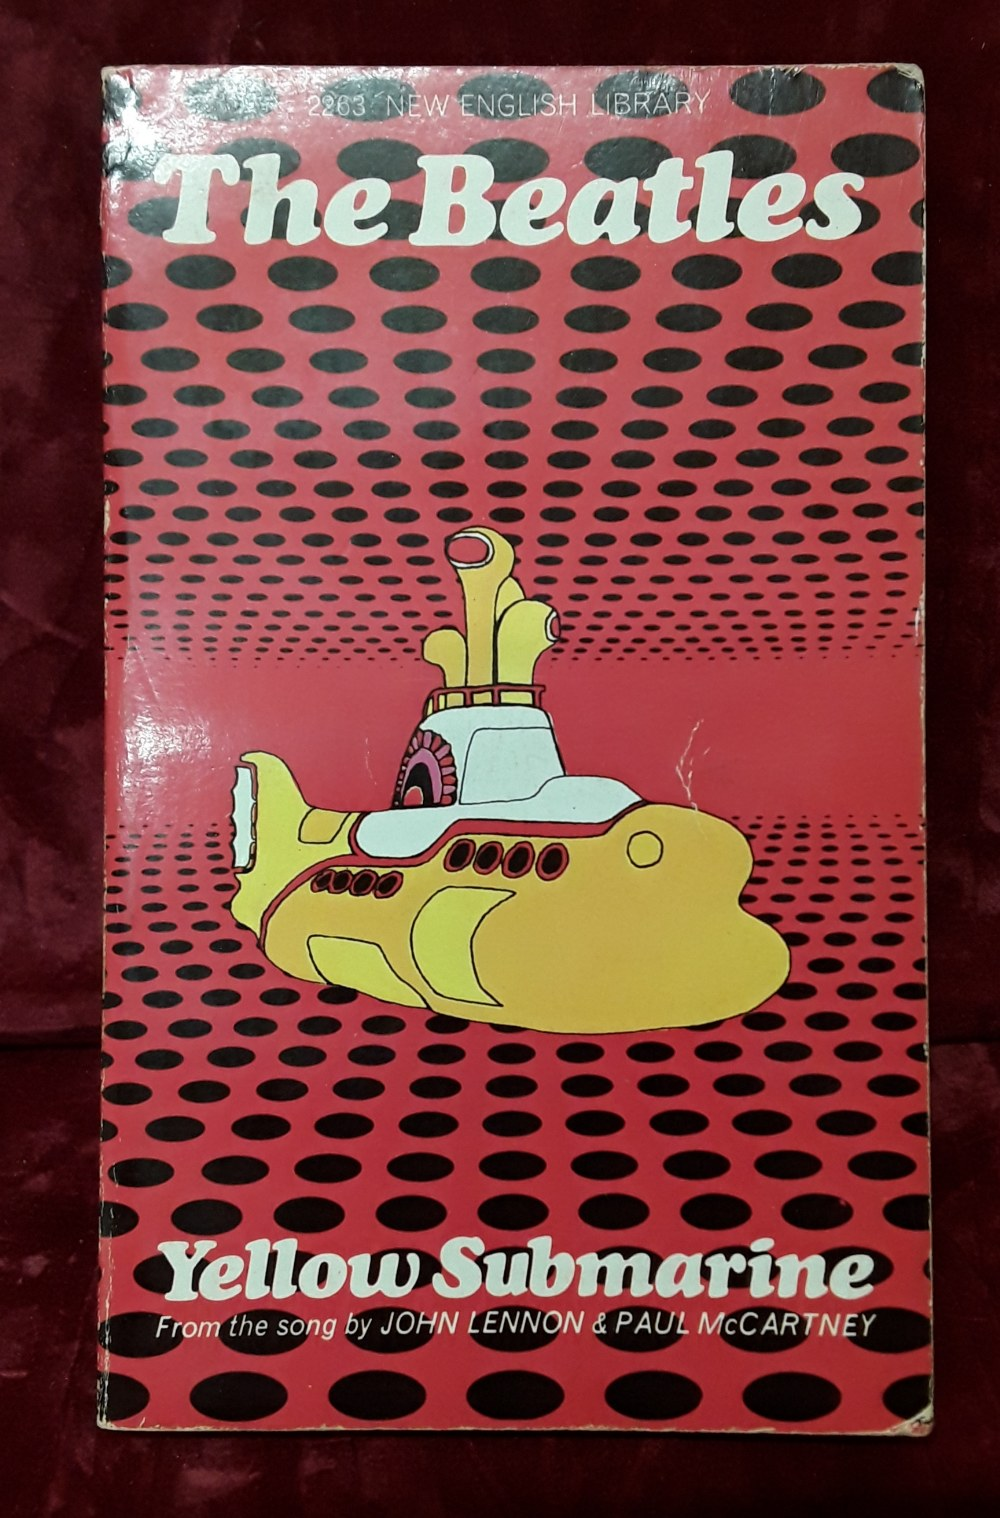 """Lot 422 - A first edition copy of the """"The Beatles Yellow Submarine"""" paperback book."""